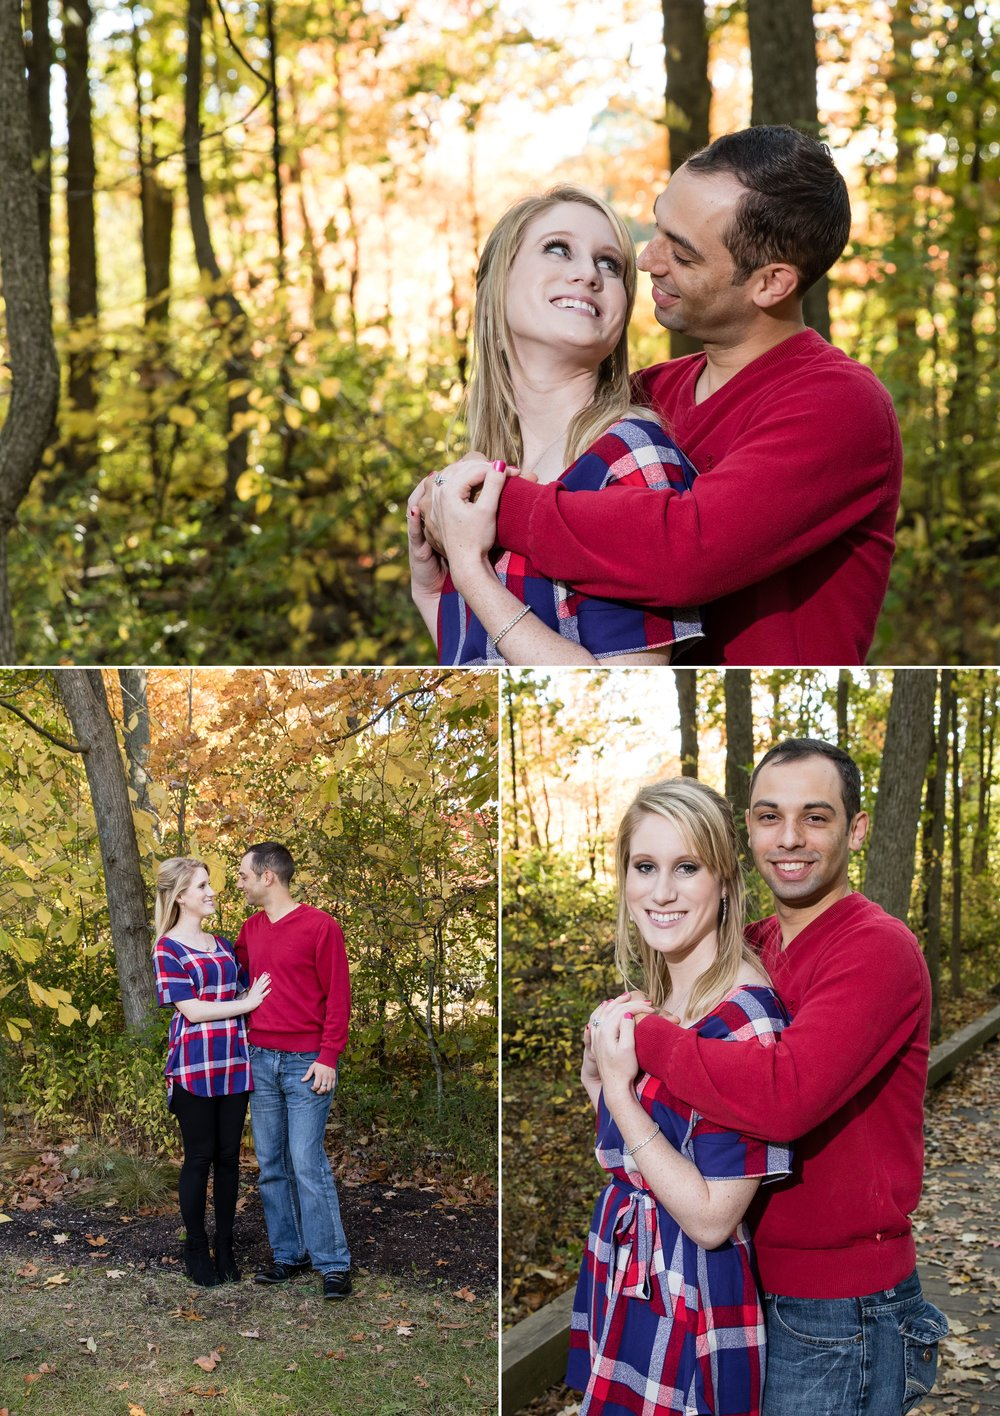 westerville-ohio-fall-outdoor-engagement-session-gahanna-wedding-photography-muschlitz-photography-002.JPG